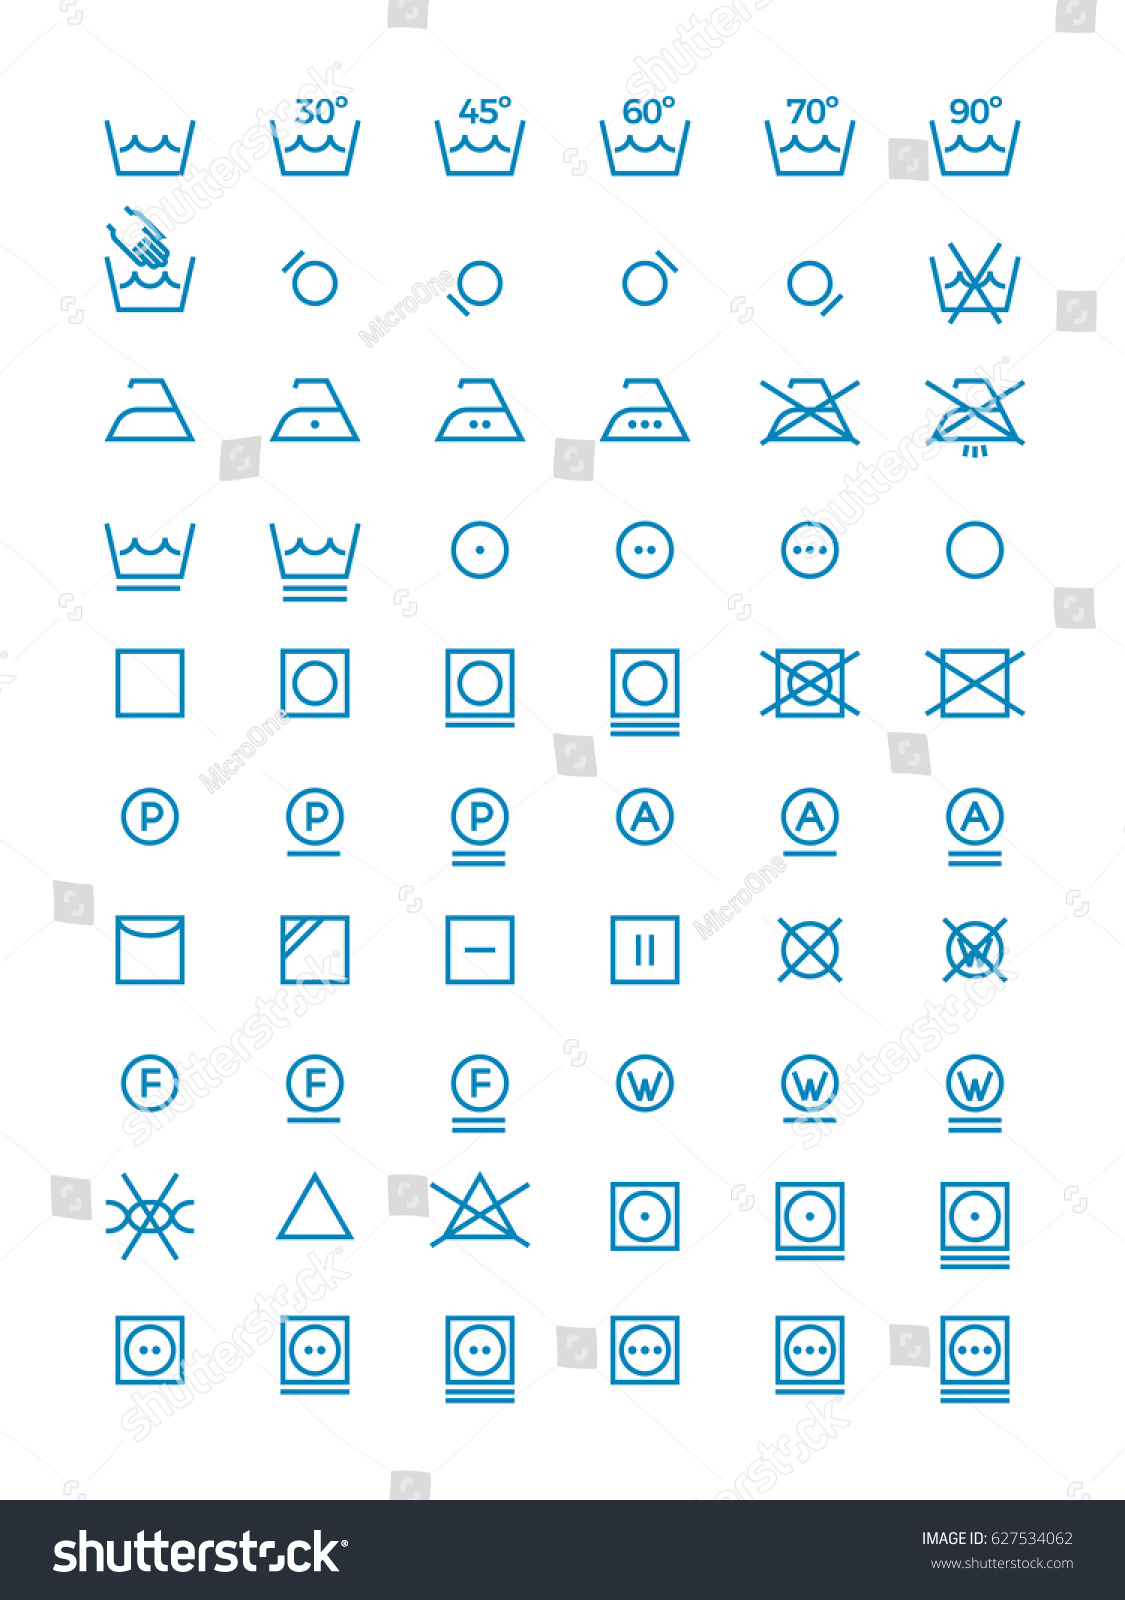 Drying symbols for laundry image collections symbol and sign ideas washing wringing drying ironing vector symbols stock vector washing and wringing drying and ironing vector symbols buycottarizona